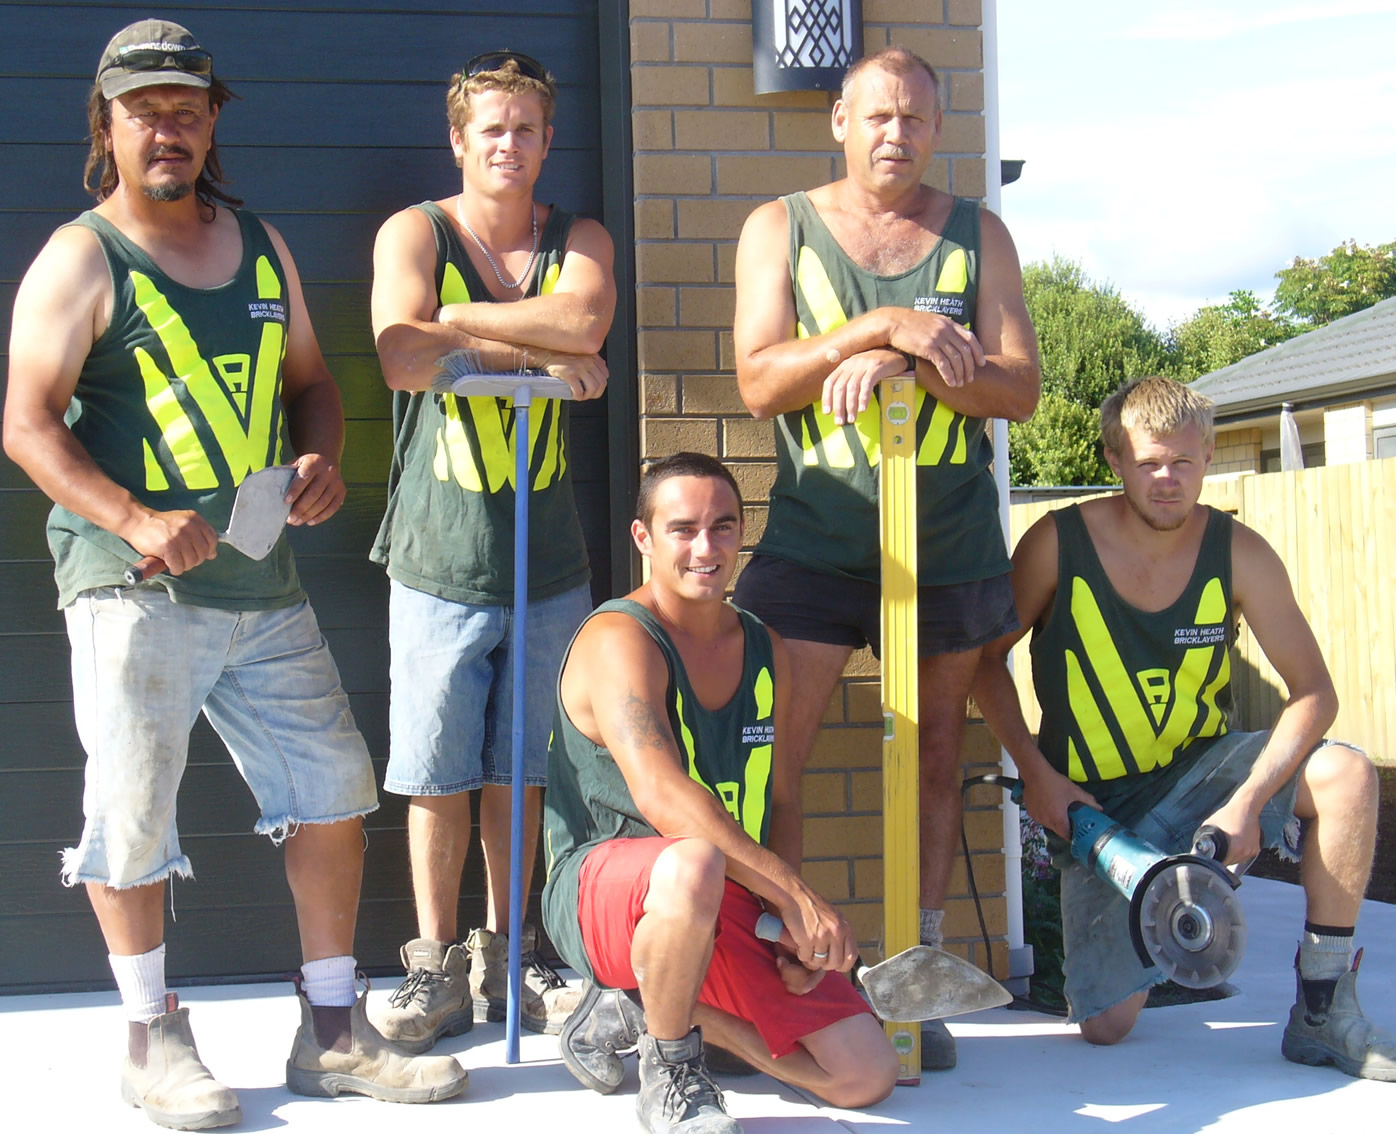 Western Bay Bricklayers